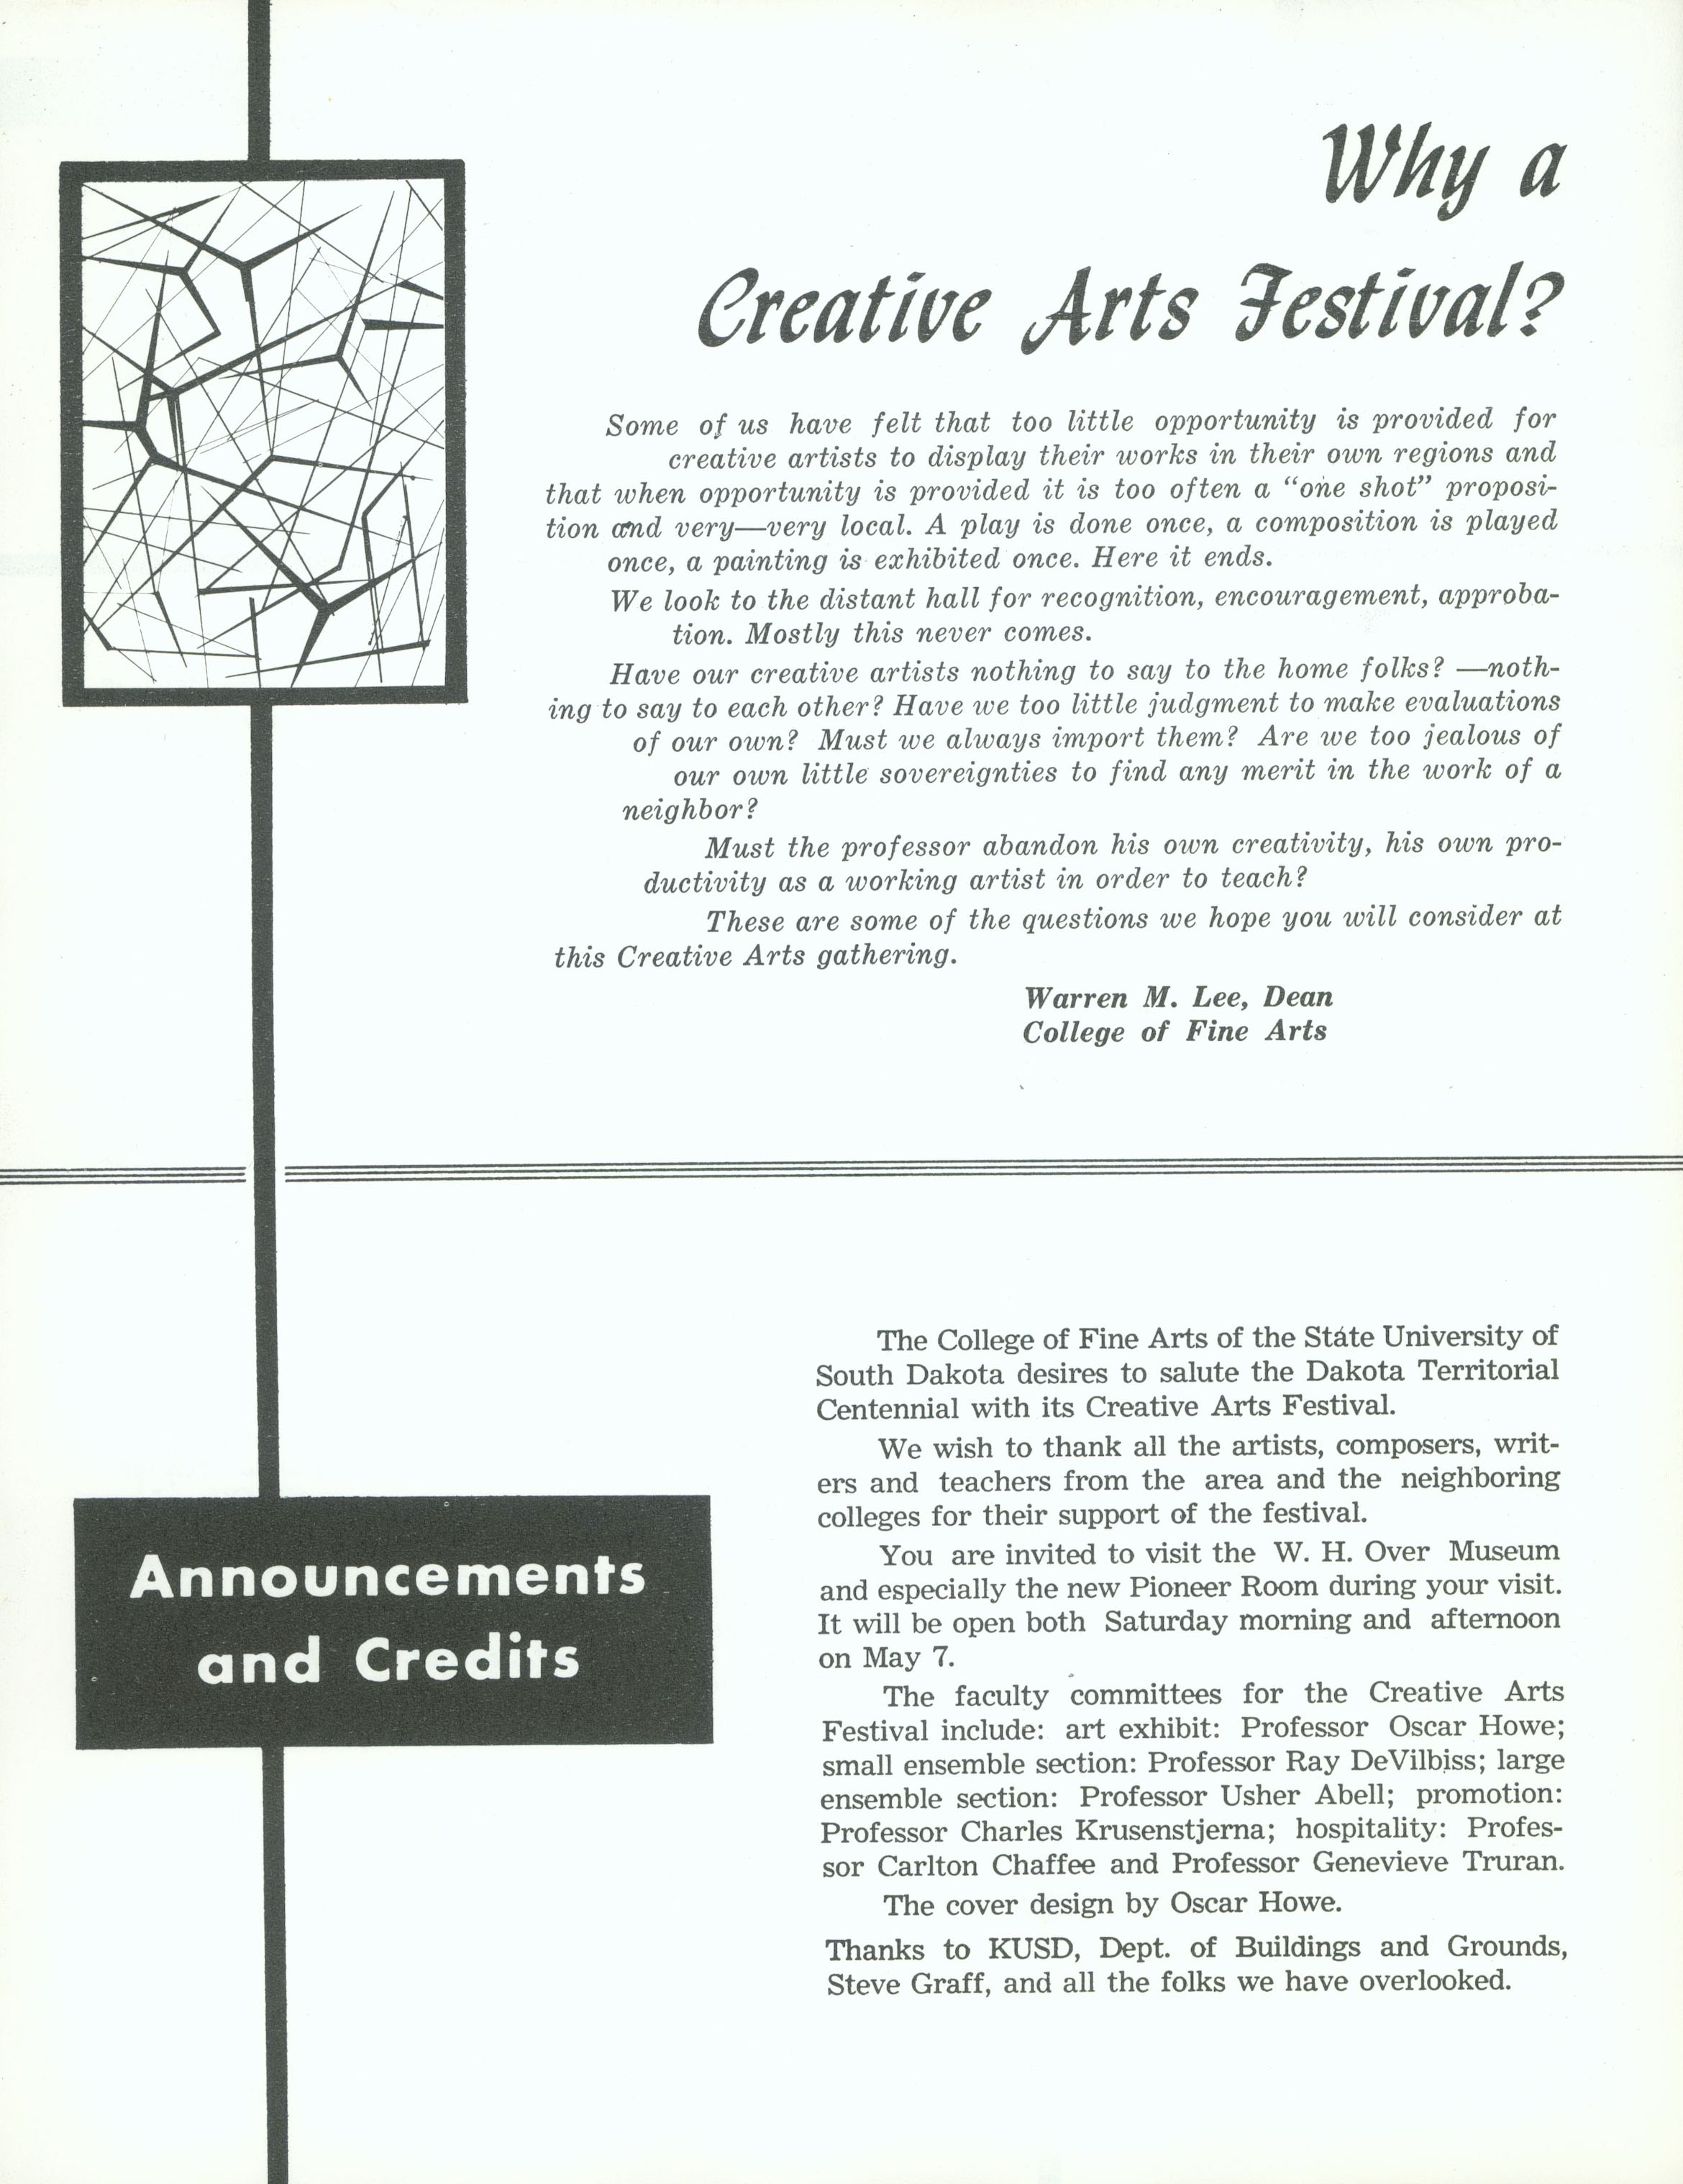 Creative Arts Festival 1960 on oscar howe museum